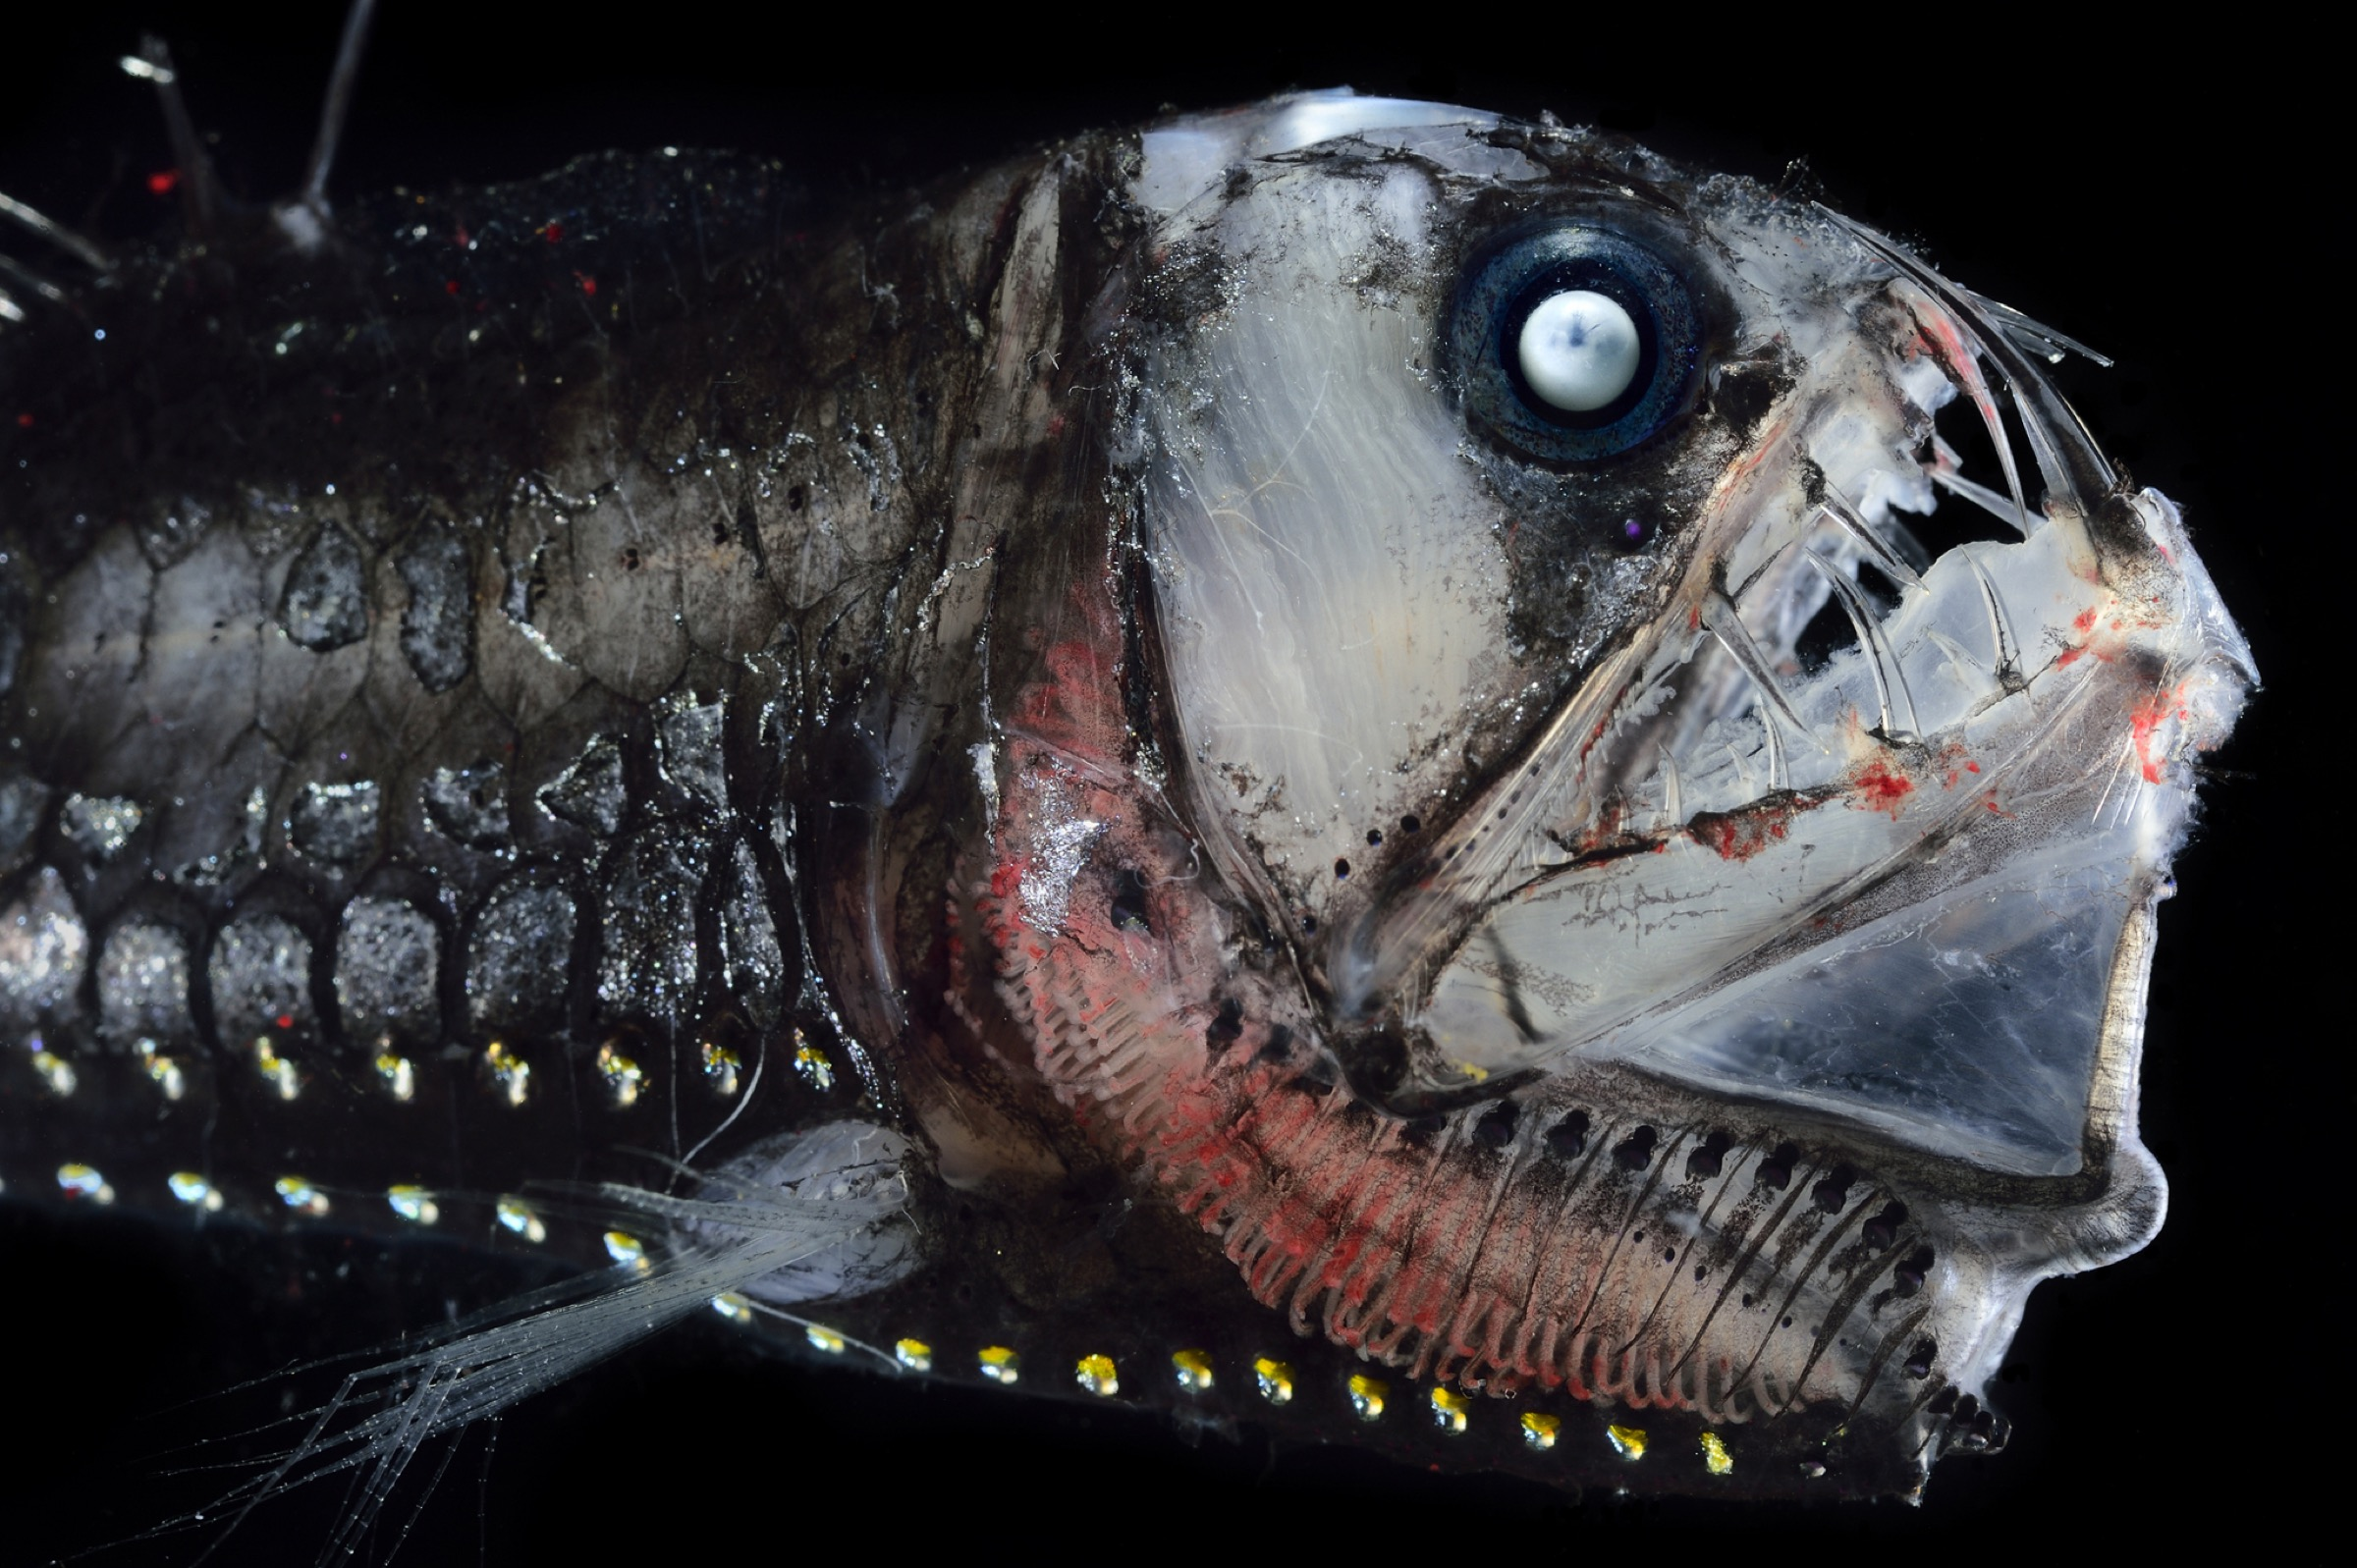 Like many other deep-sea fishes, the Sloan's viperfish (Chauliodus sloani) uses light-producing cells called photophores to lure unsuspecting prey toward its mouth. Once it catches its victim, the viperfish's hinged teeth rotate inward to trap the animal and force it inescapably down the predator's gullet.